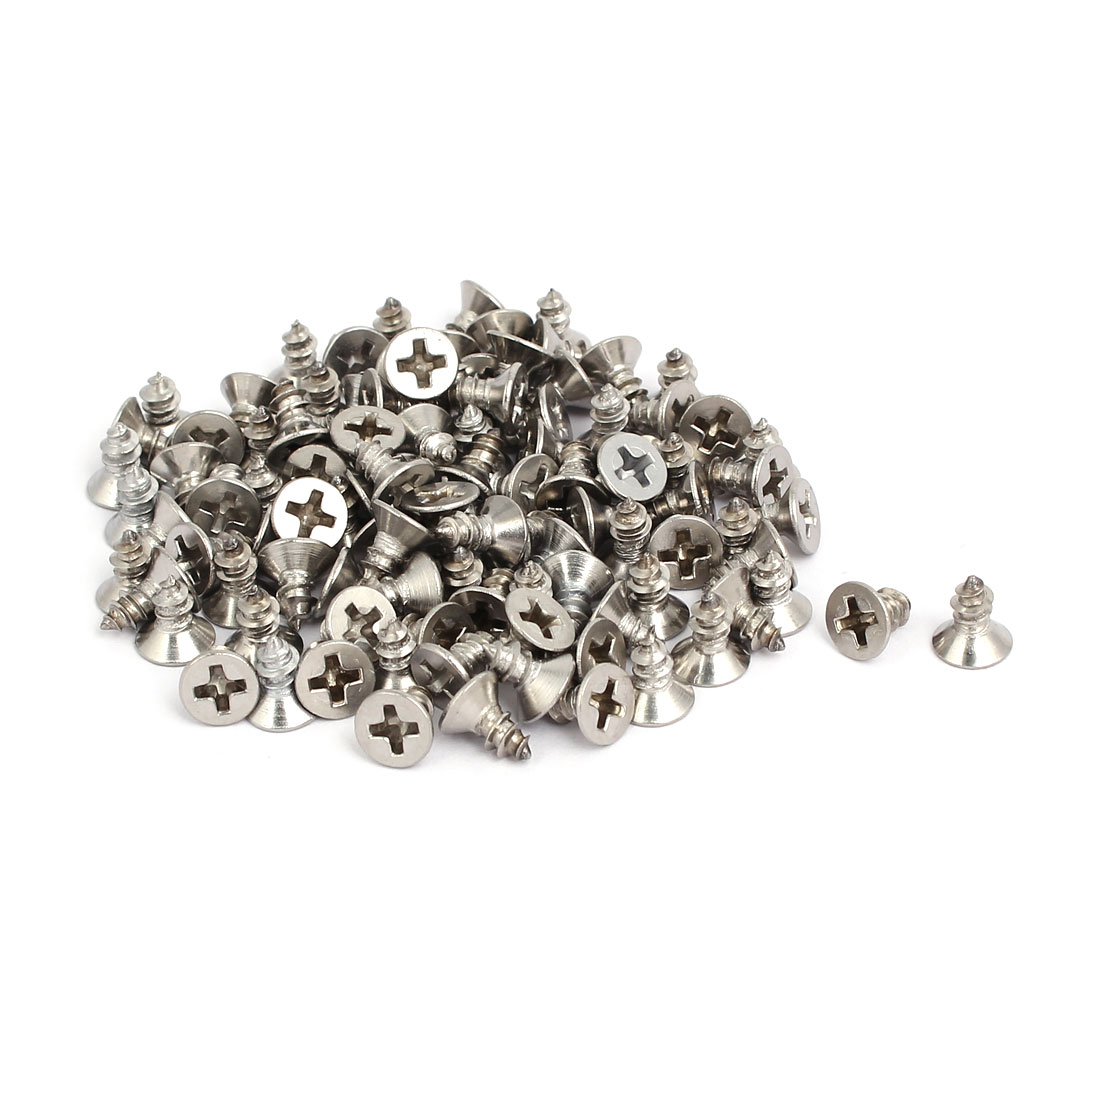 M4x8mm 304 Stainless Steel Phillips Drive Flat Head Self Tapping Screws 100pcs